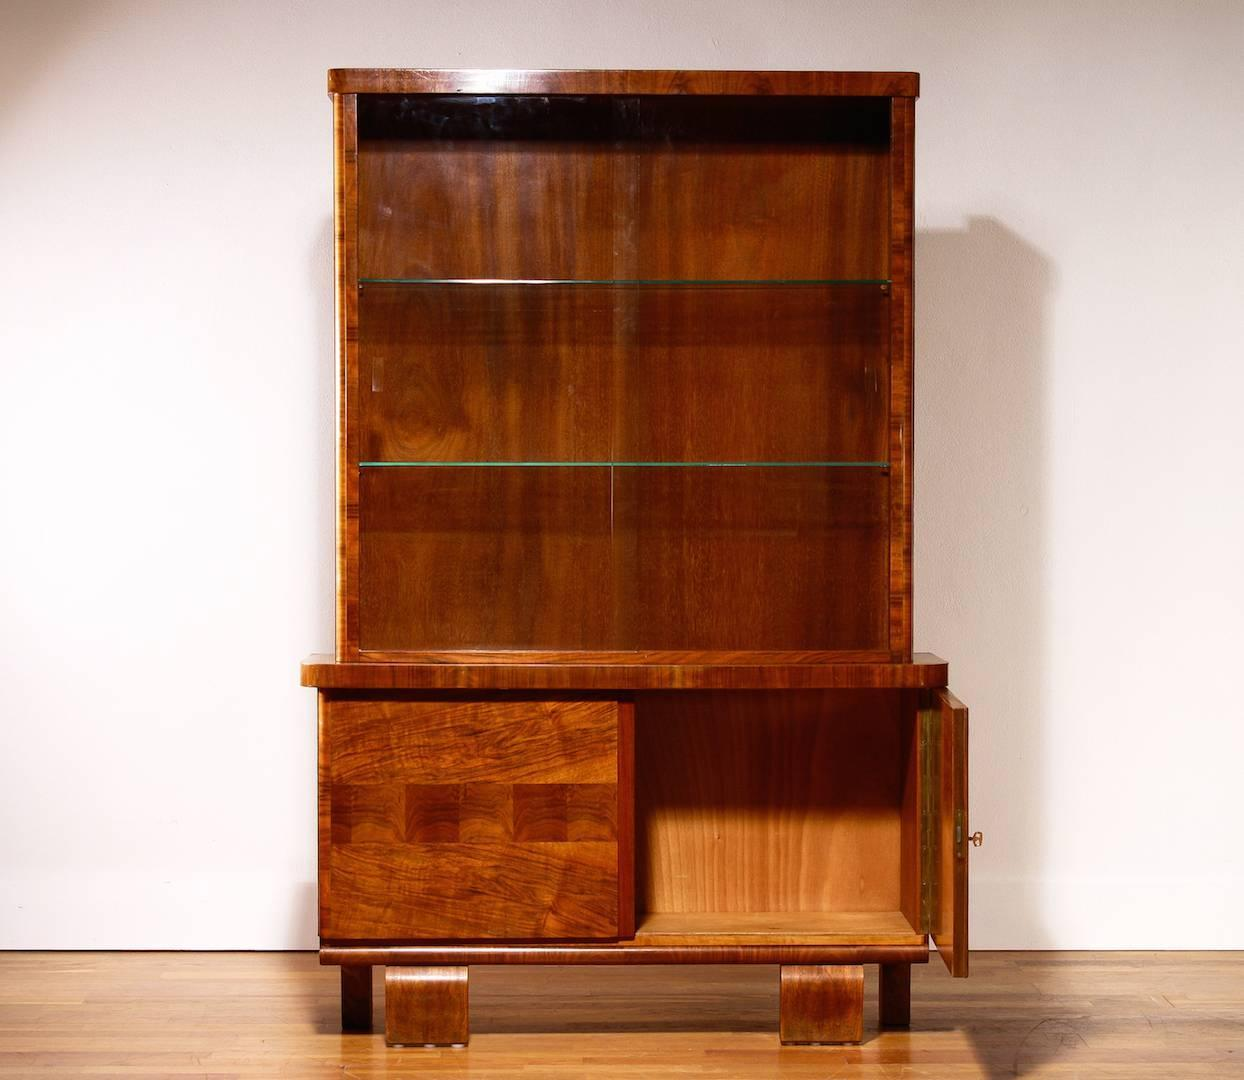 1930s art deco walnut display cabinet for sale at 1stdibs for 1930s kitchen cabinets for sale